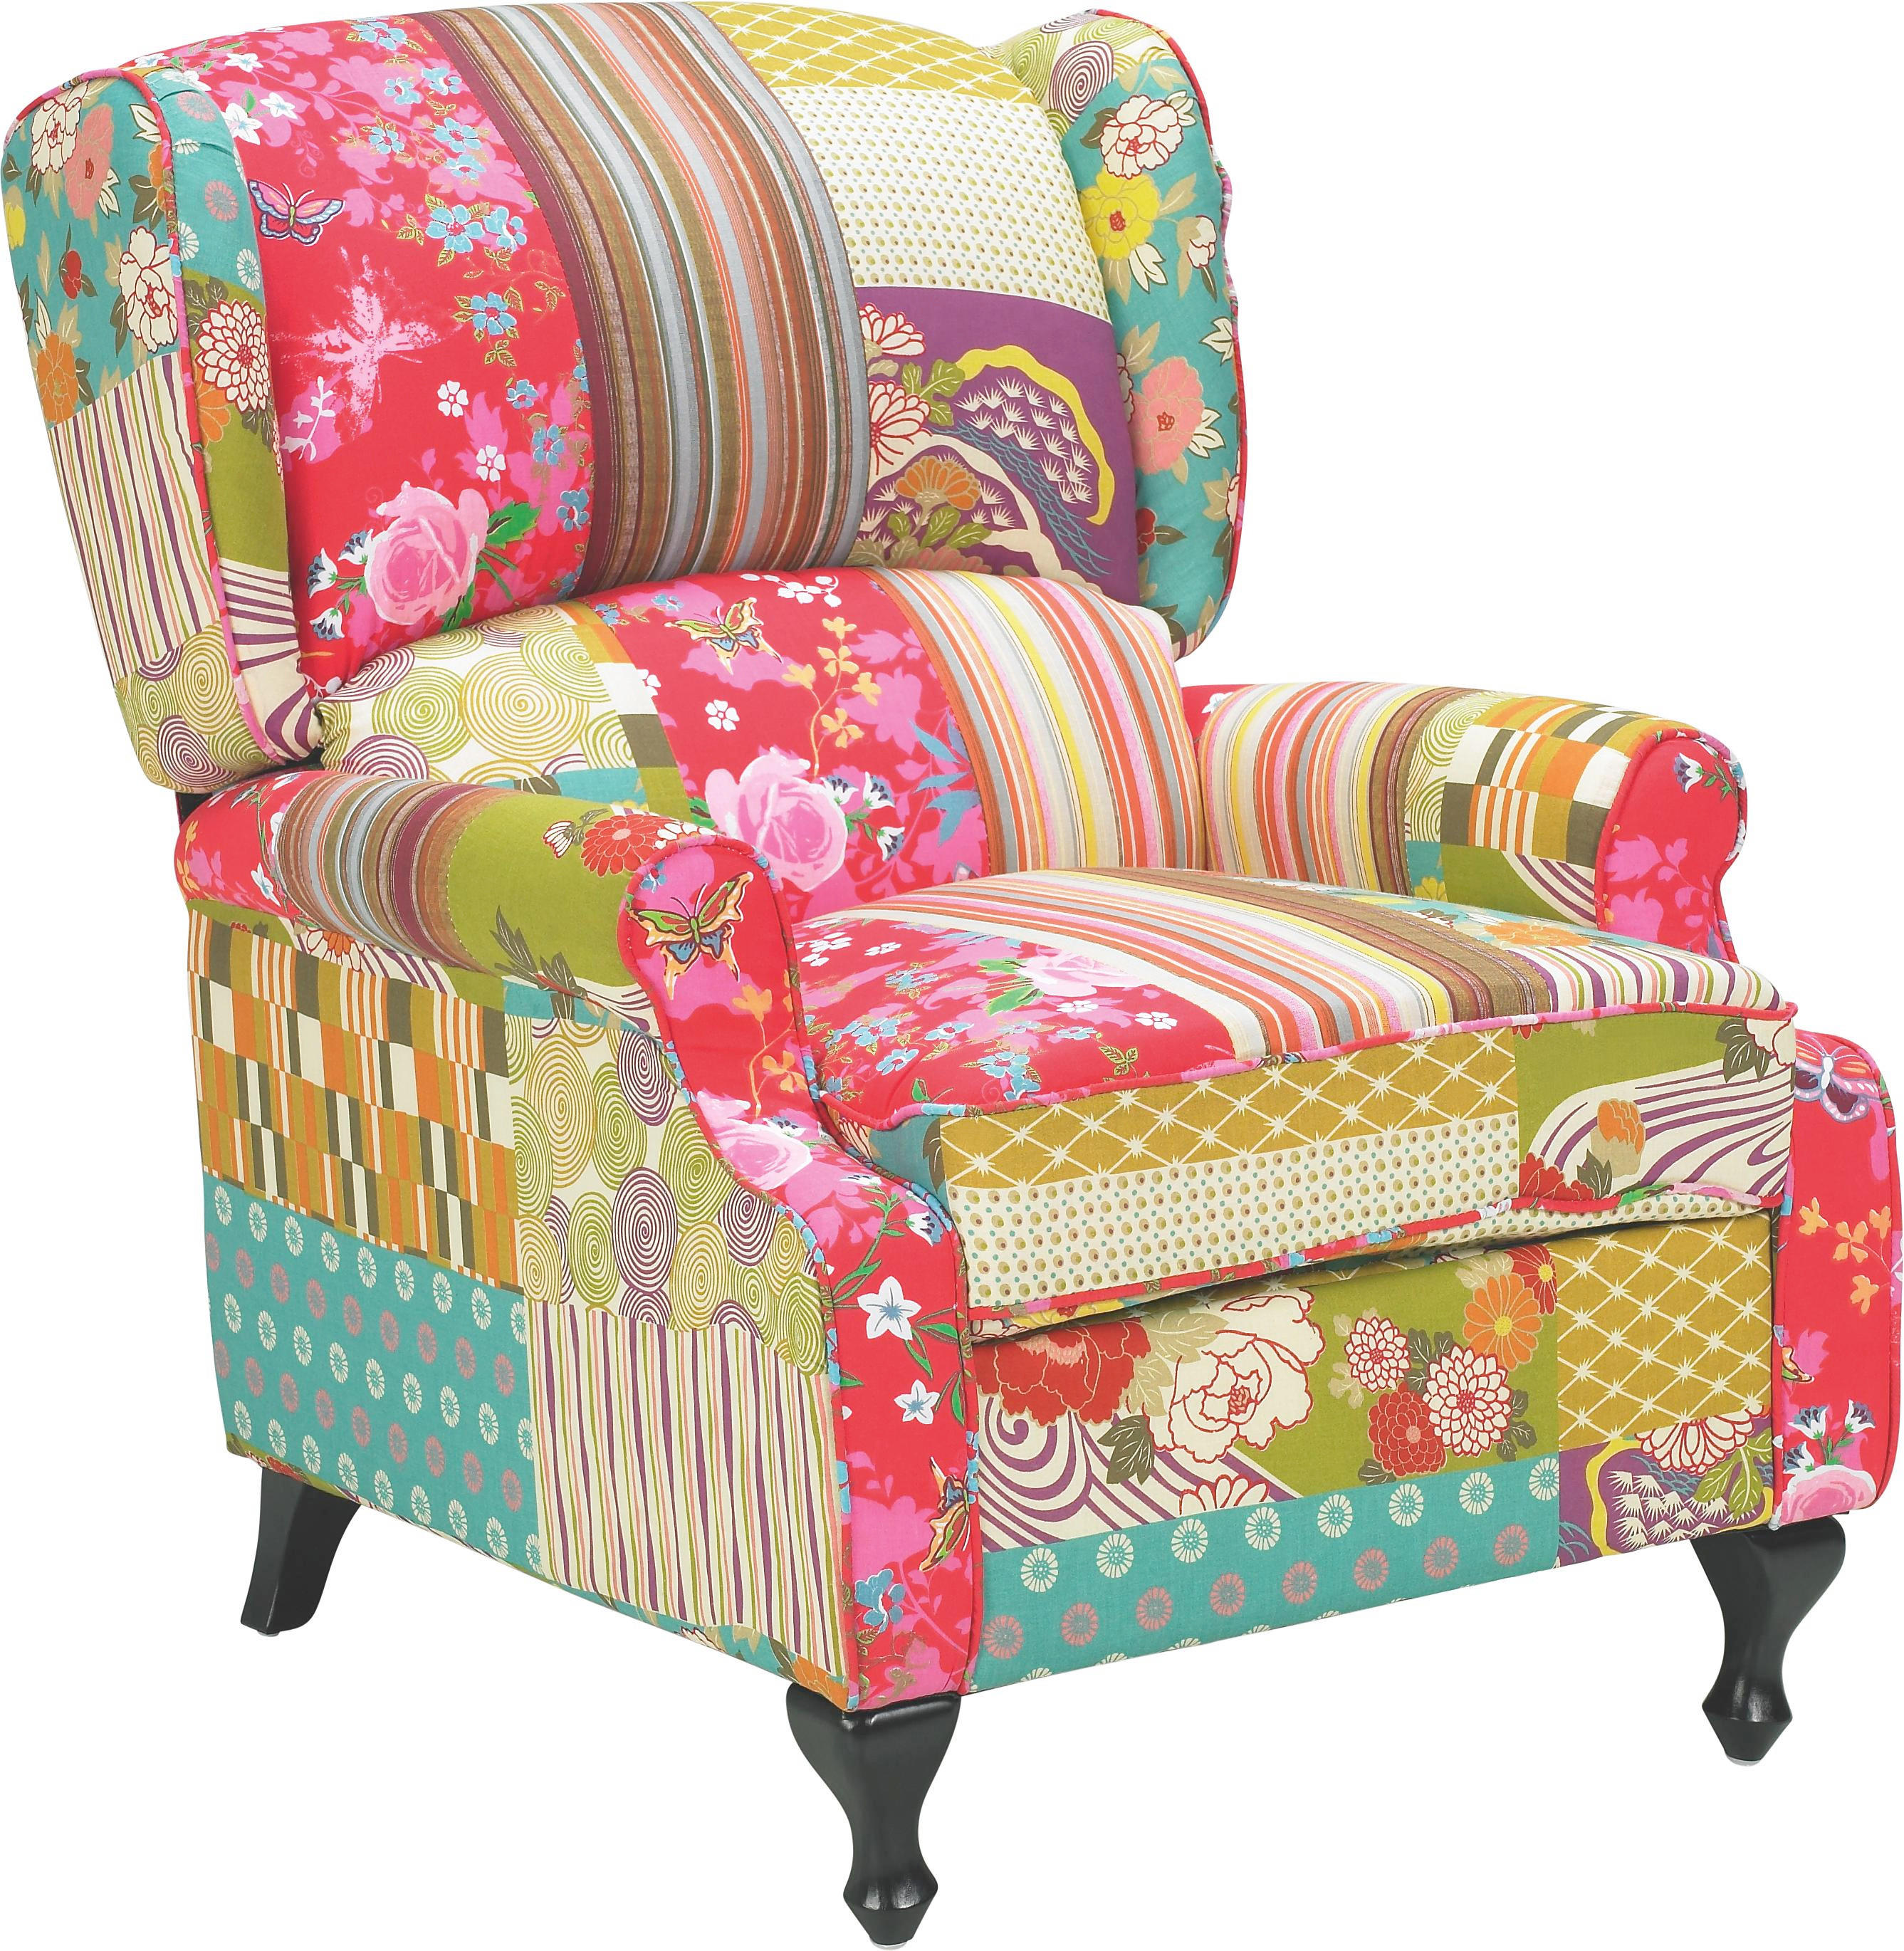 Xxl Sessel Patchwork Ohrensessel Multicolor